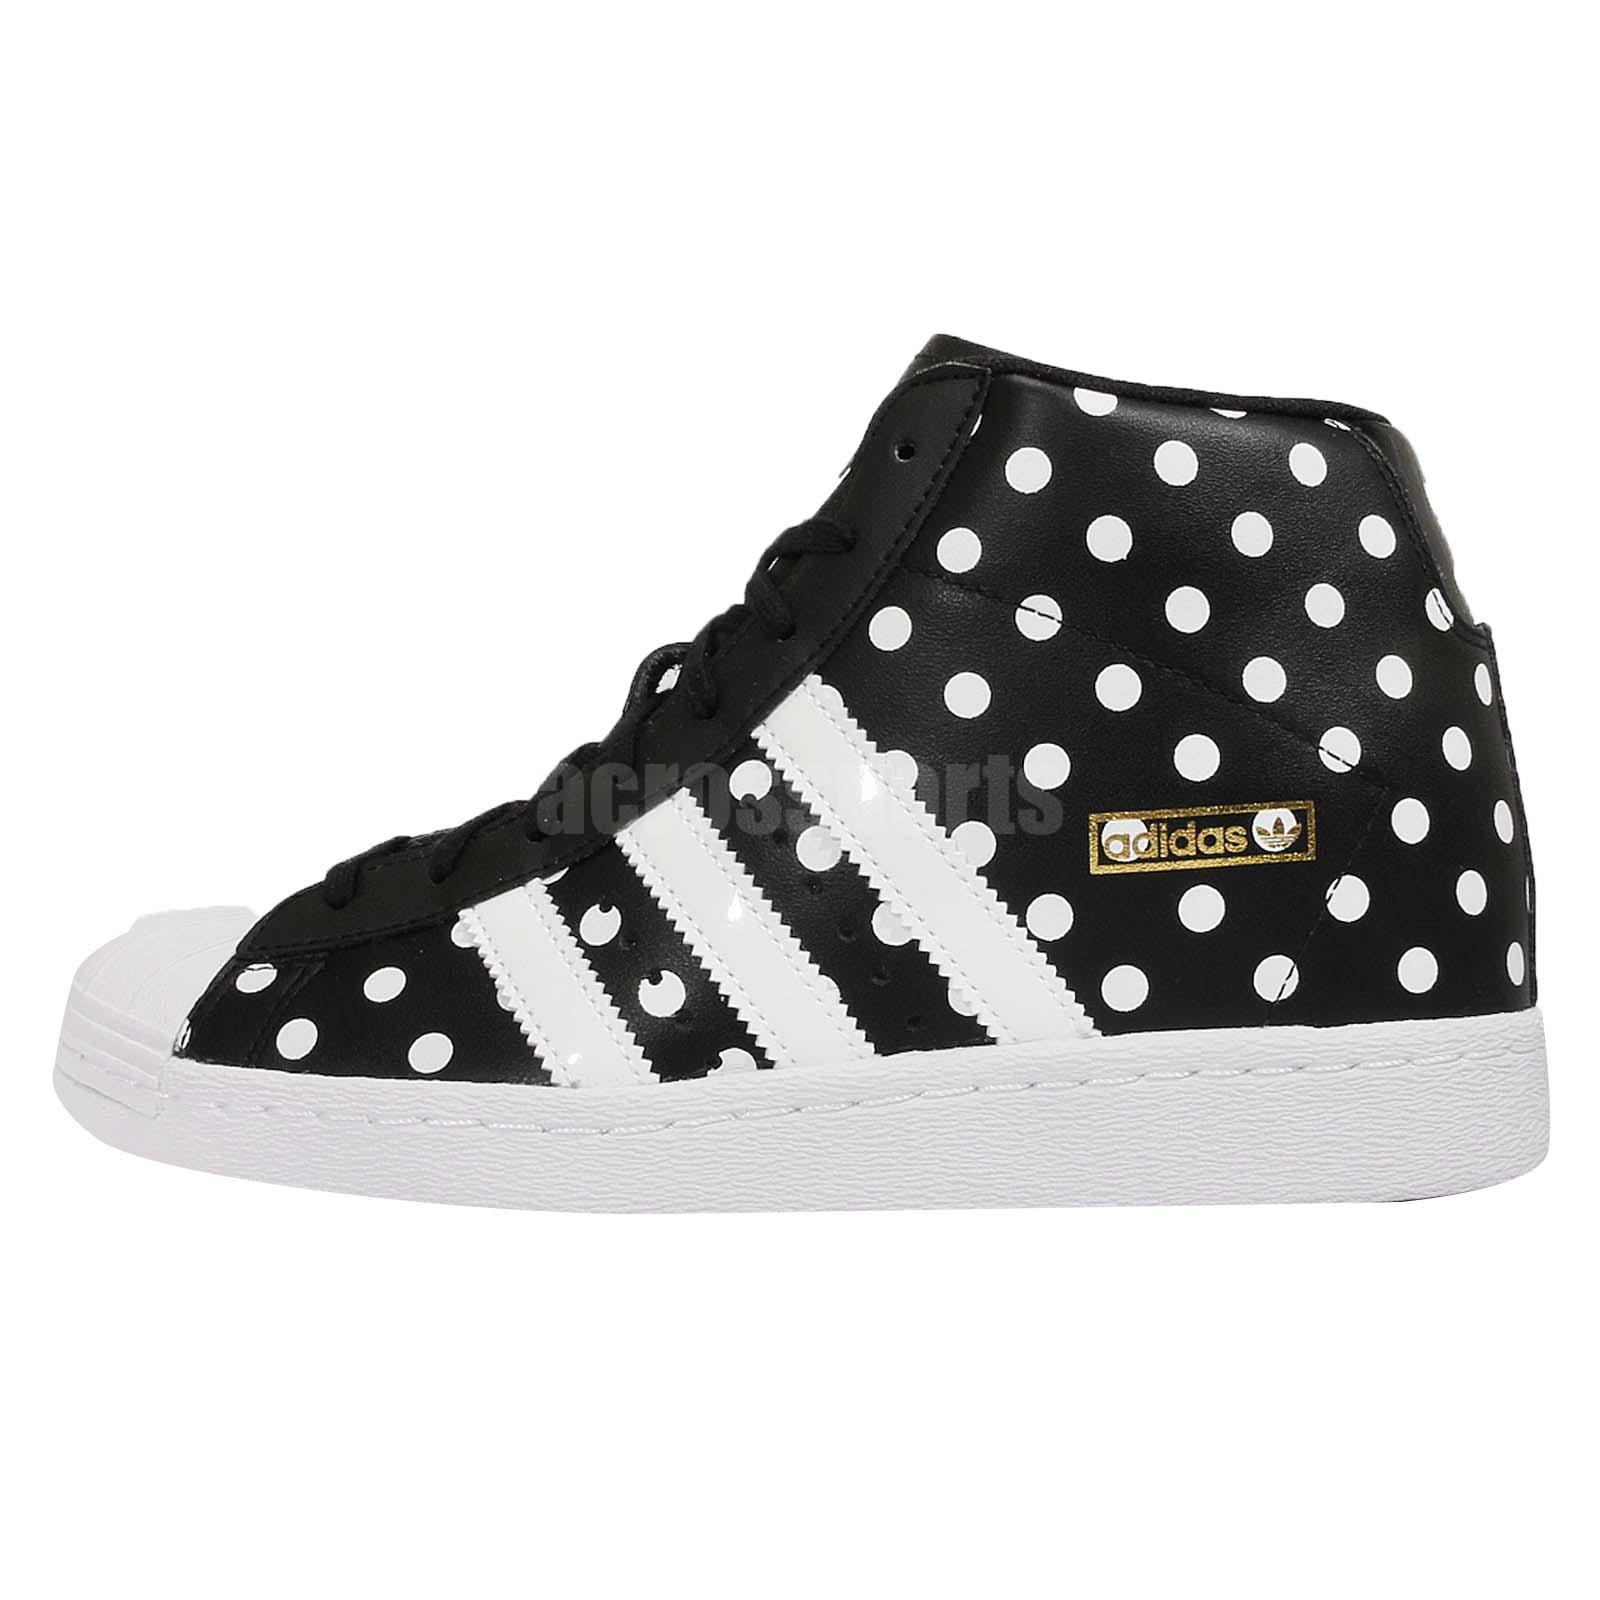 Adidas Superstar Up Womens Wedges in Black White